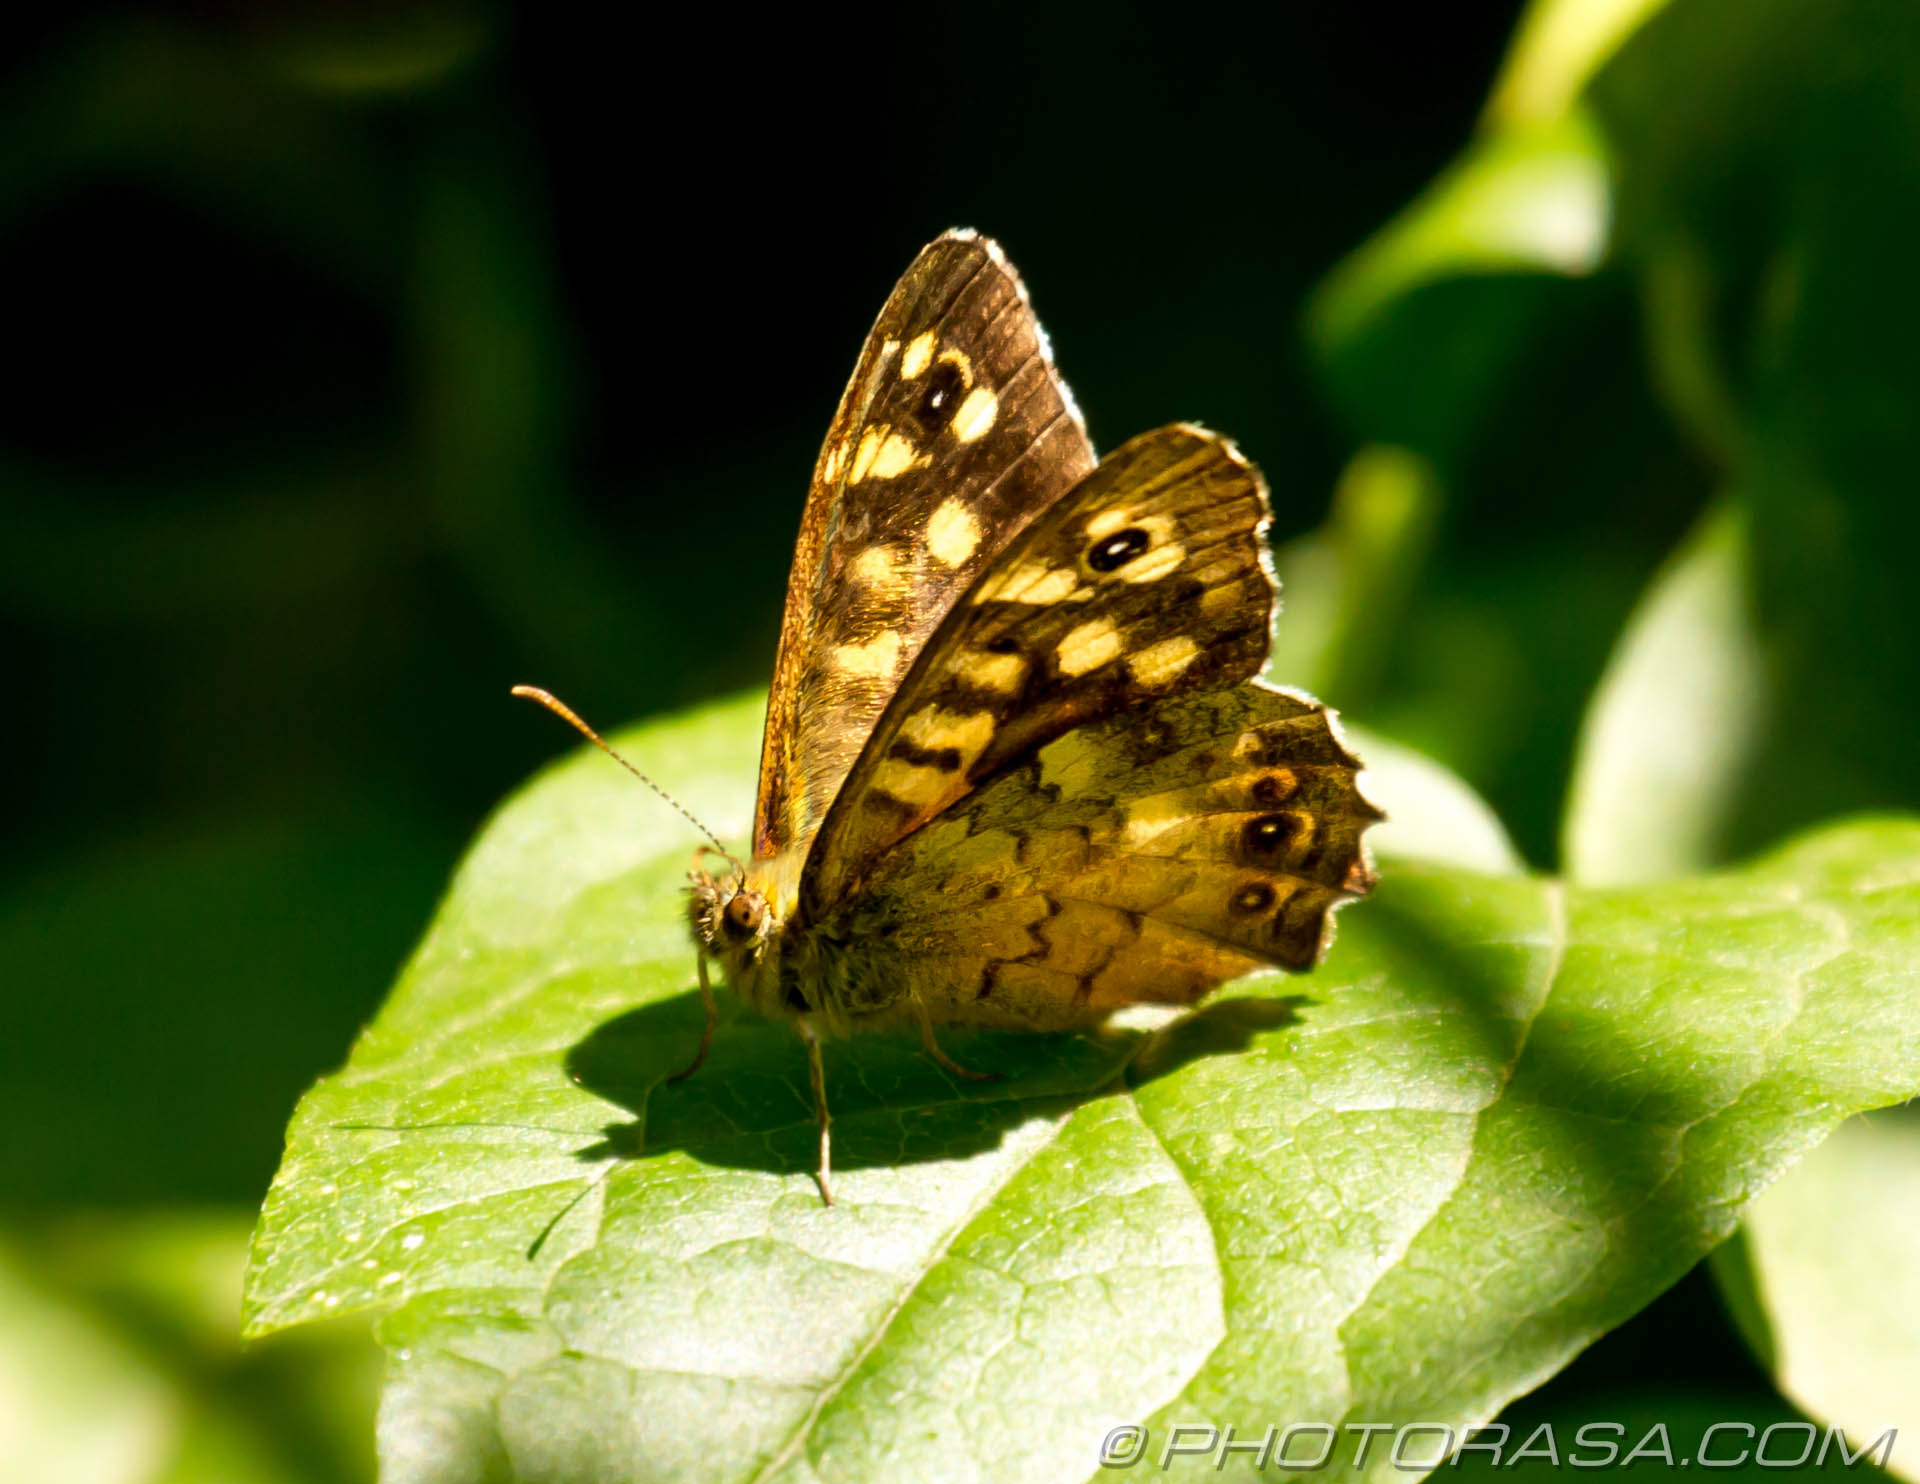 https://photorasa.com/speckled-wood-butterfly/speckled-wood-in-sunlight/